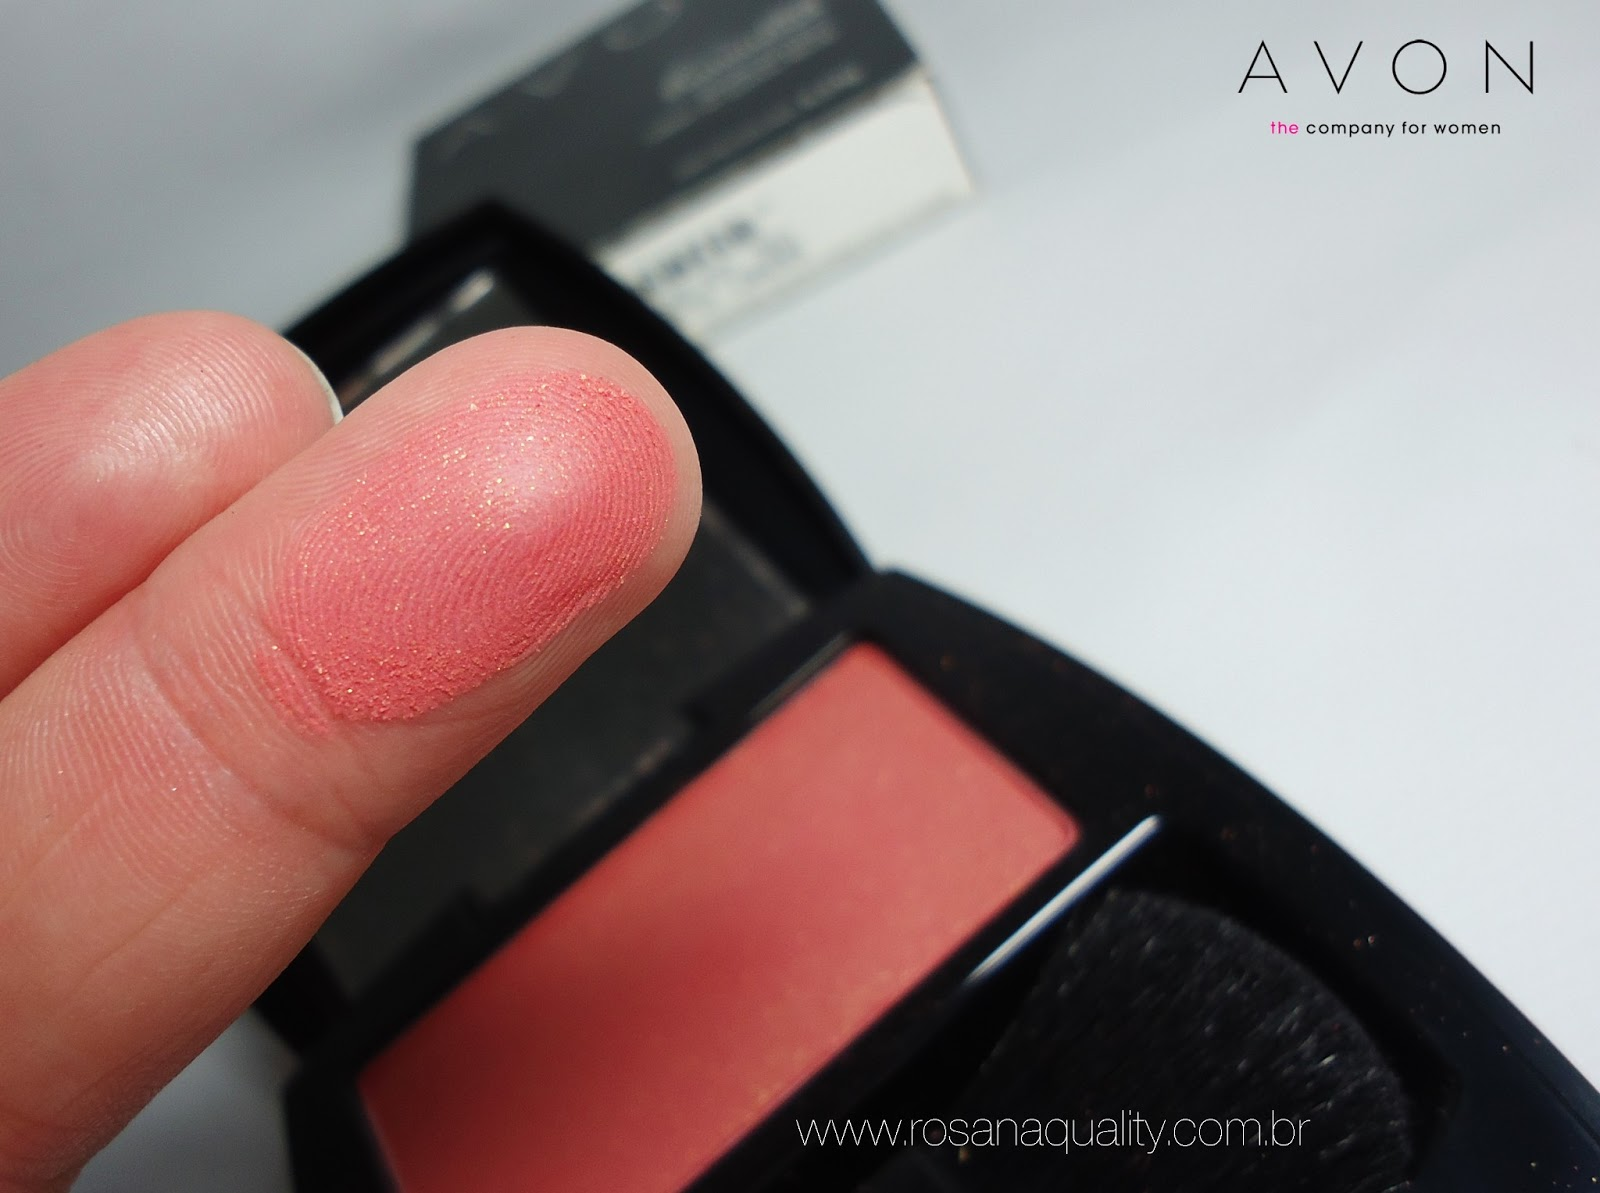 Blush Berry Glow Avon